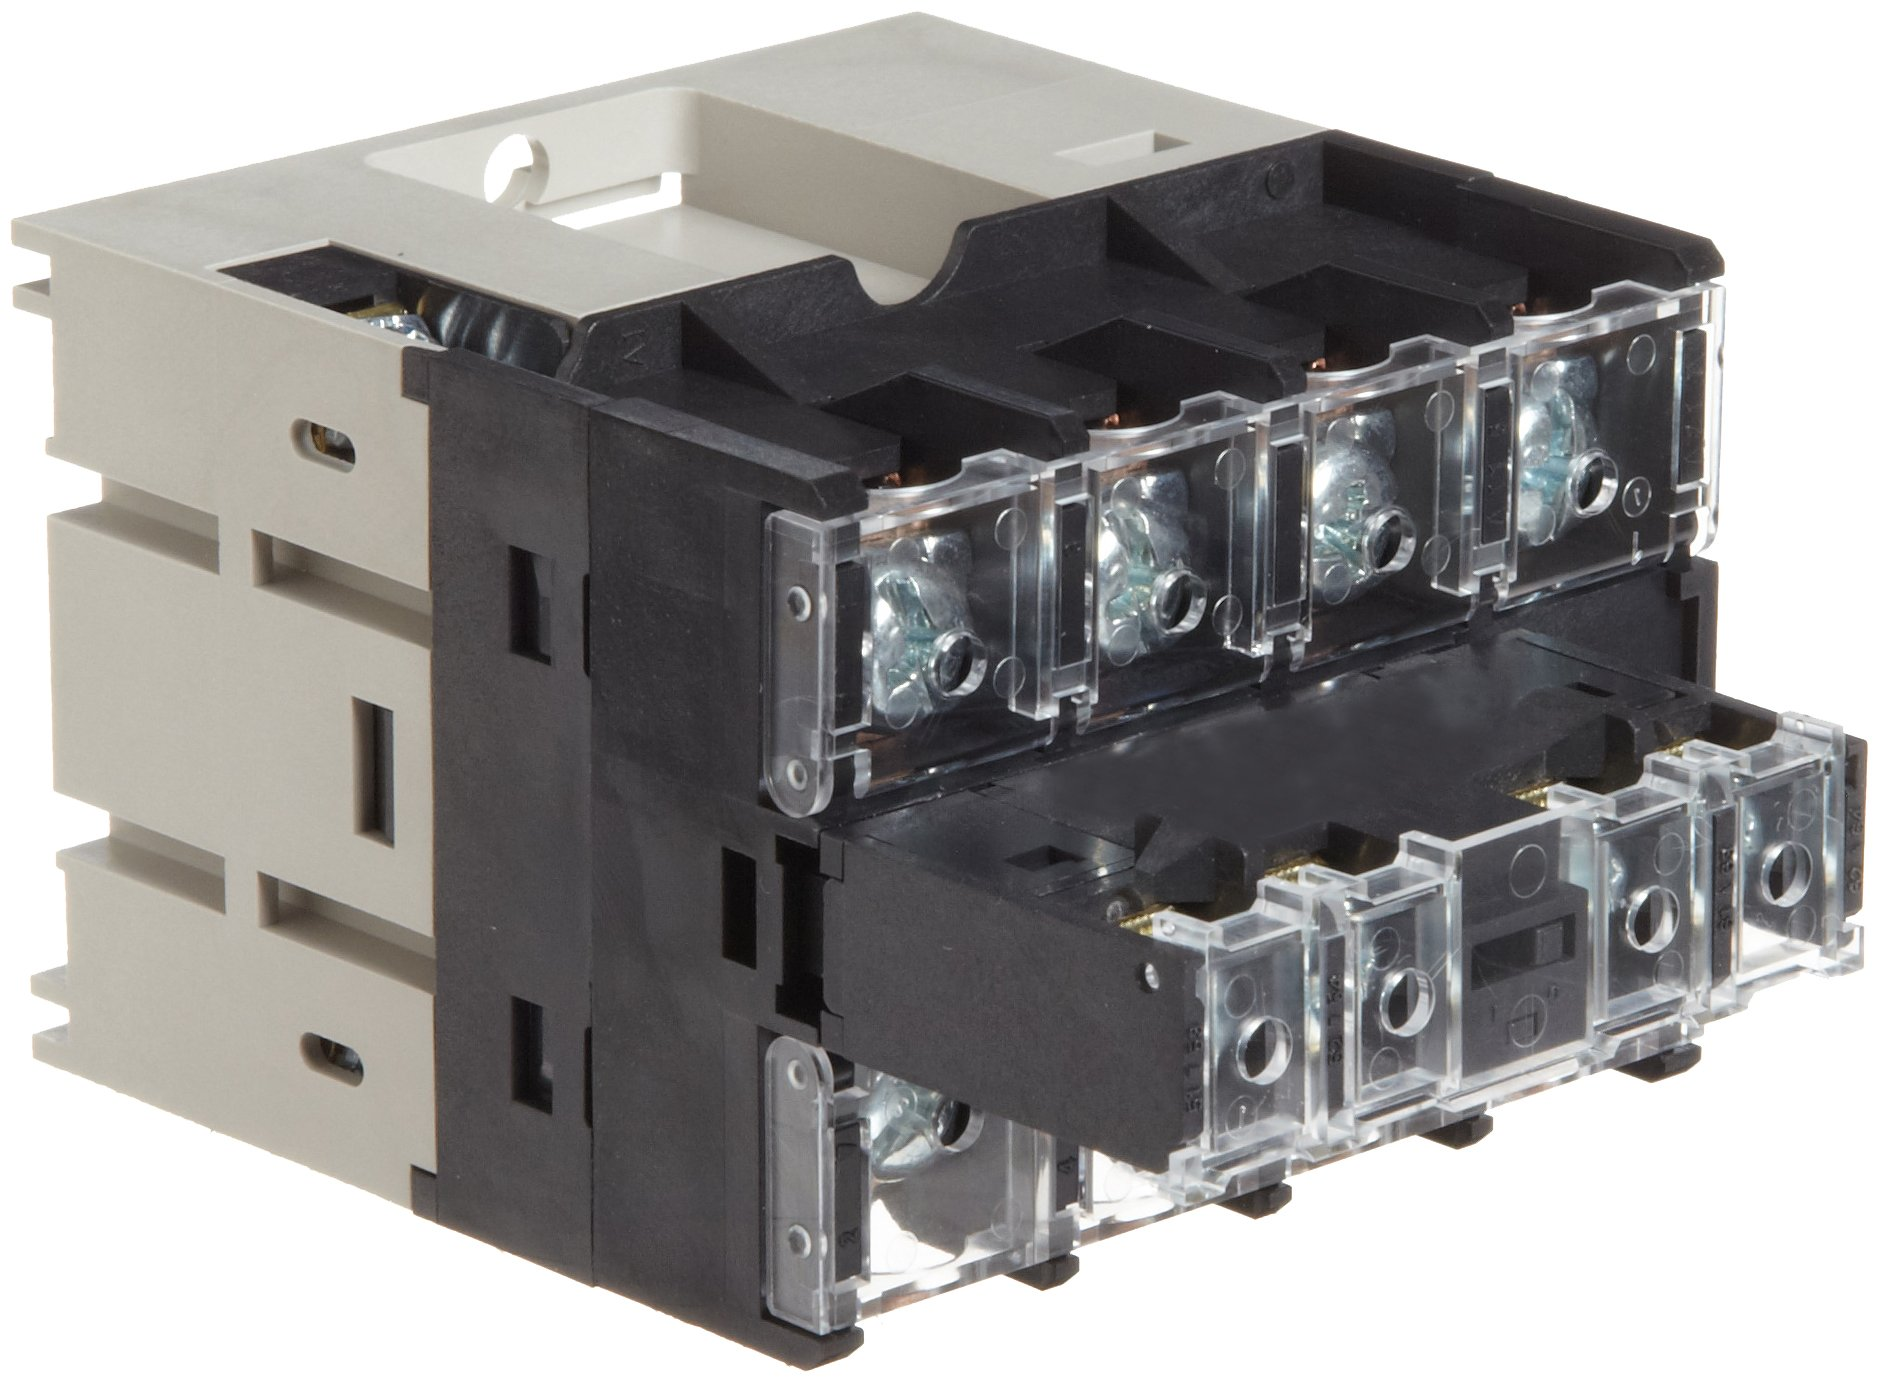 Omron G7Z-4A-20Z DC12 Power Relay with Auziliary Contact Block, Screw Terminal, Quadruple Pole Single Throw Normally Open Relay Contacts, Double Pole Single Throw Normally Open Auxiliary Contact Block Contacts, 333 mA Rated Load Current, 12 VDC Rated Load